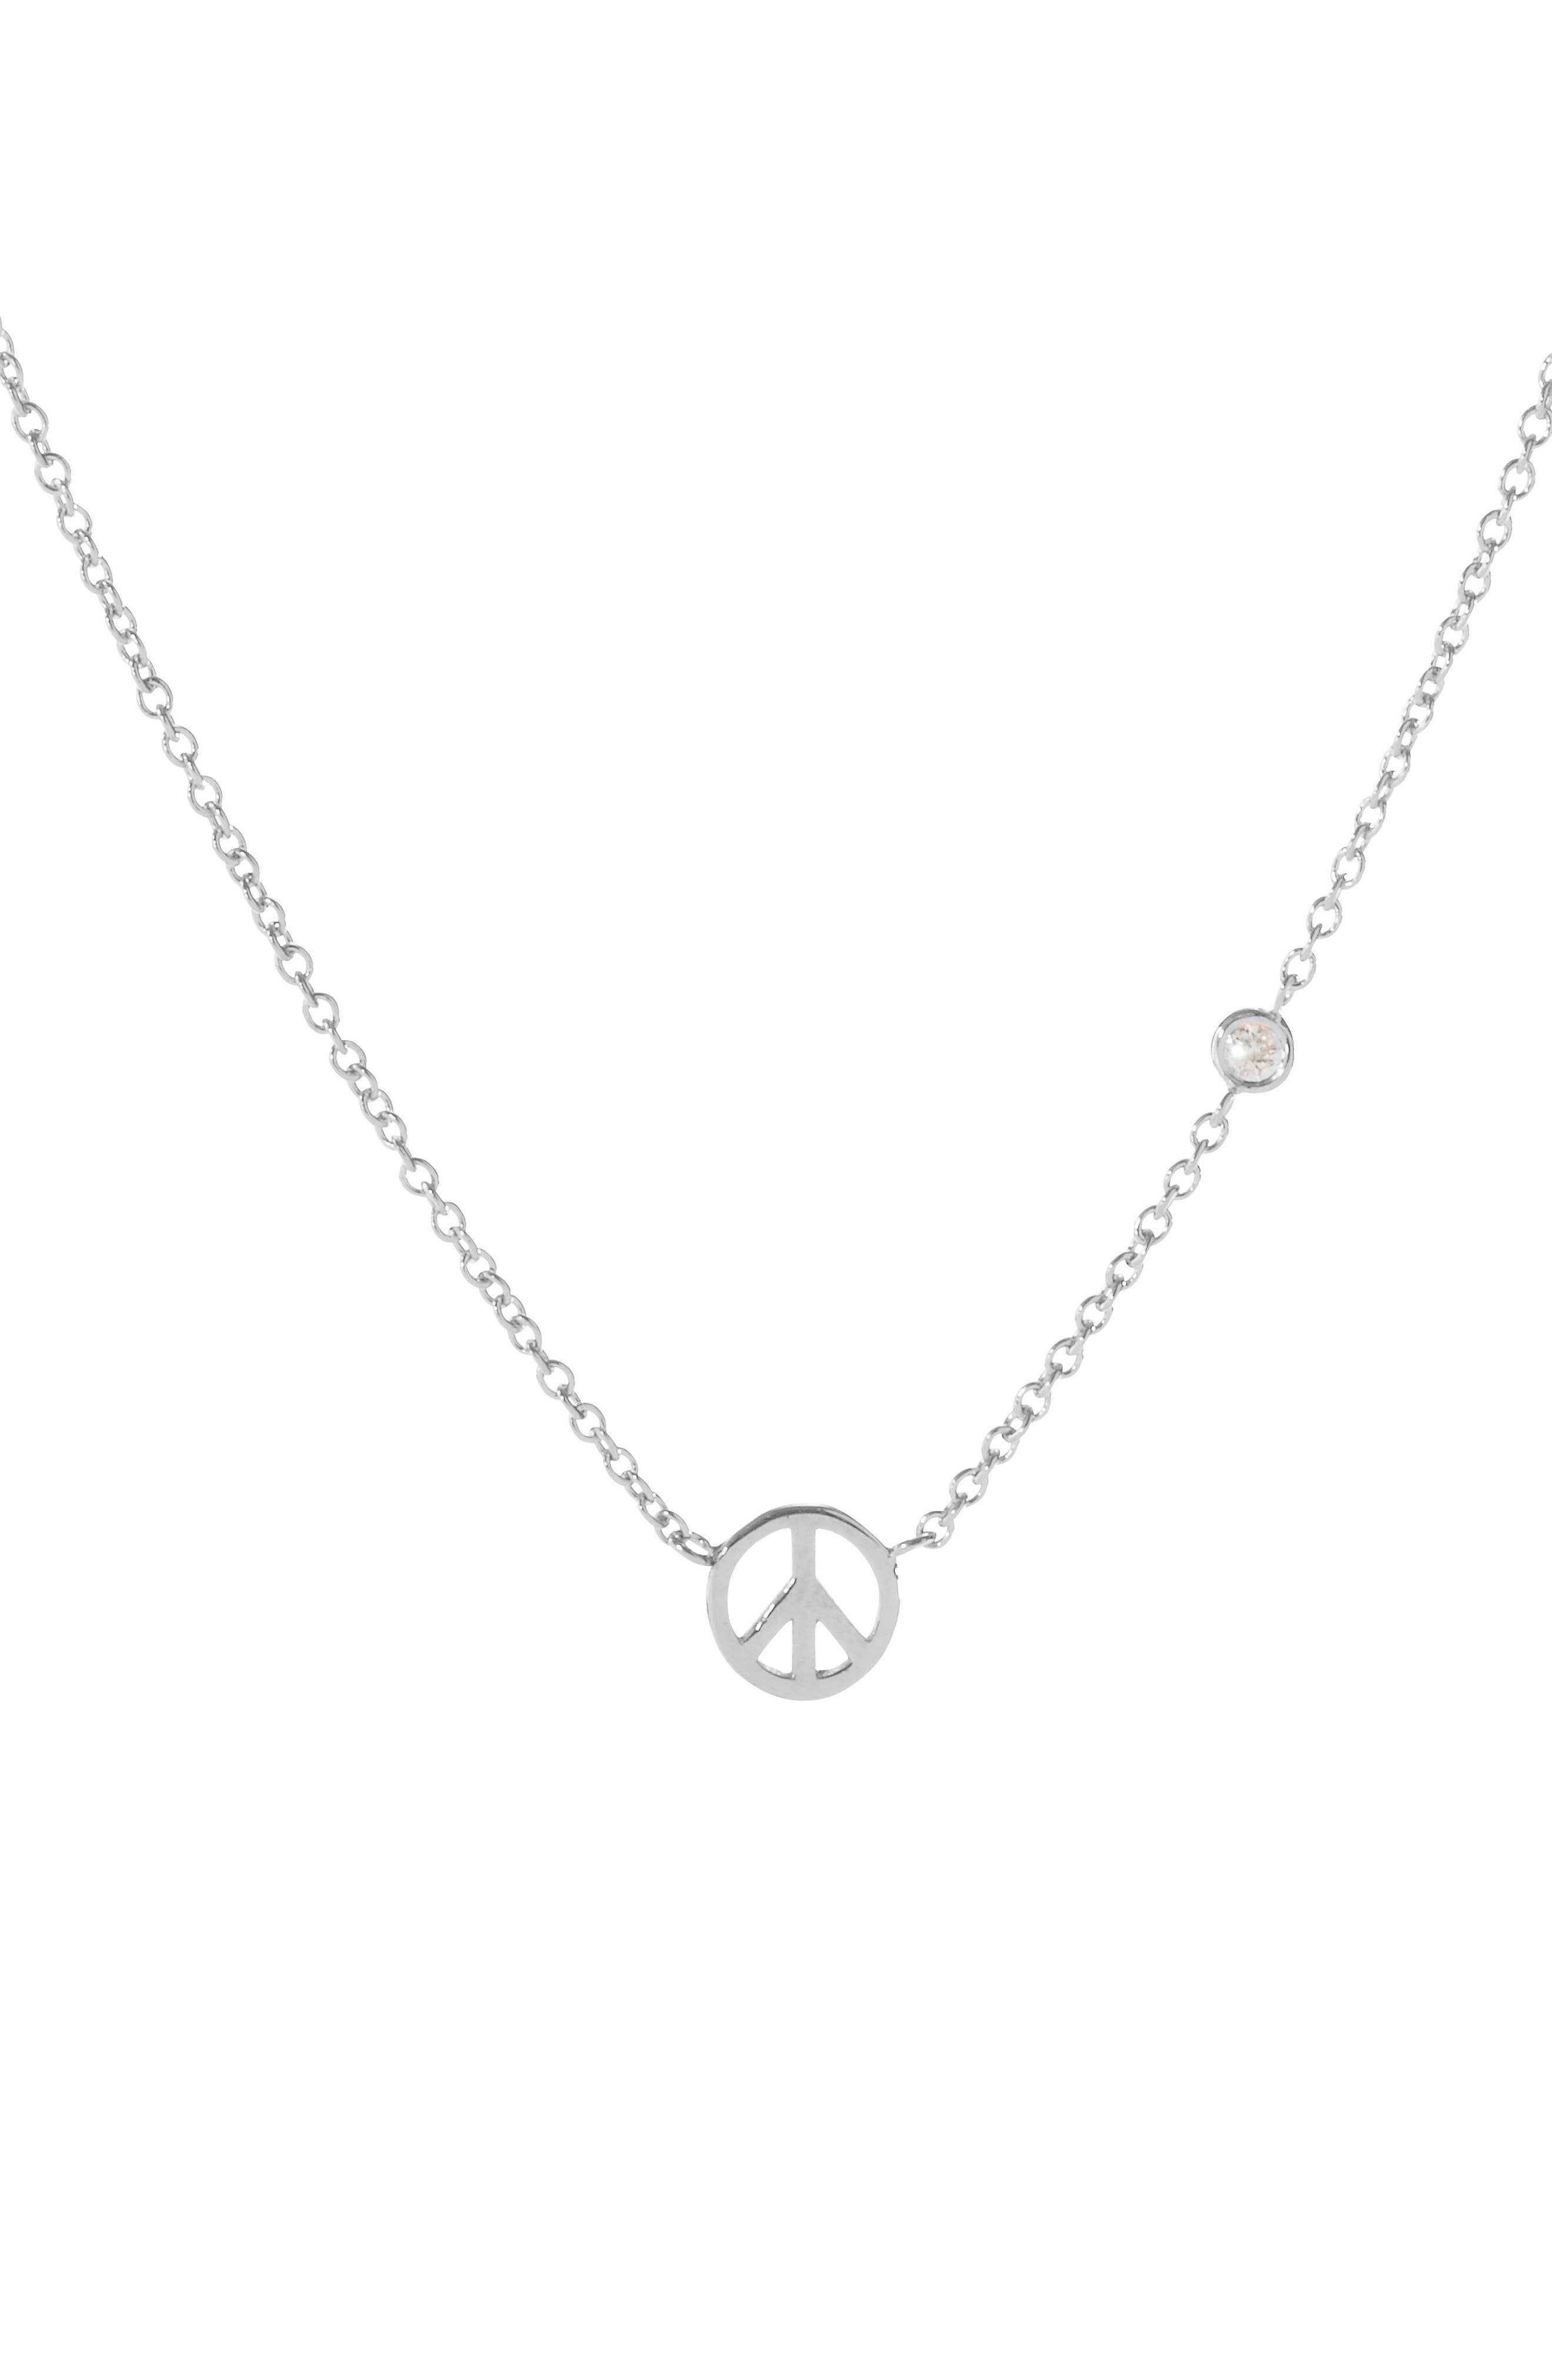 Peace Sign Necklace,                             Main thumbnail 1, color,                             Silver